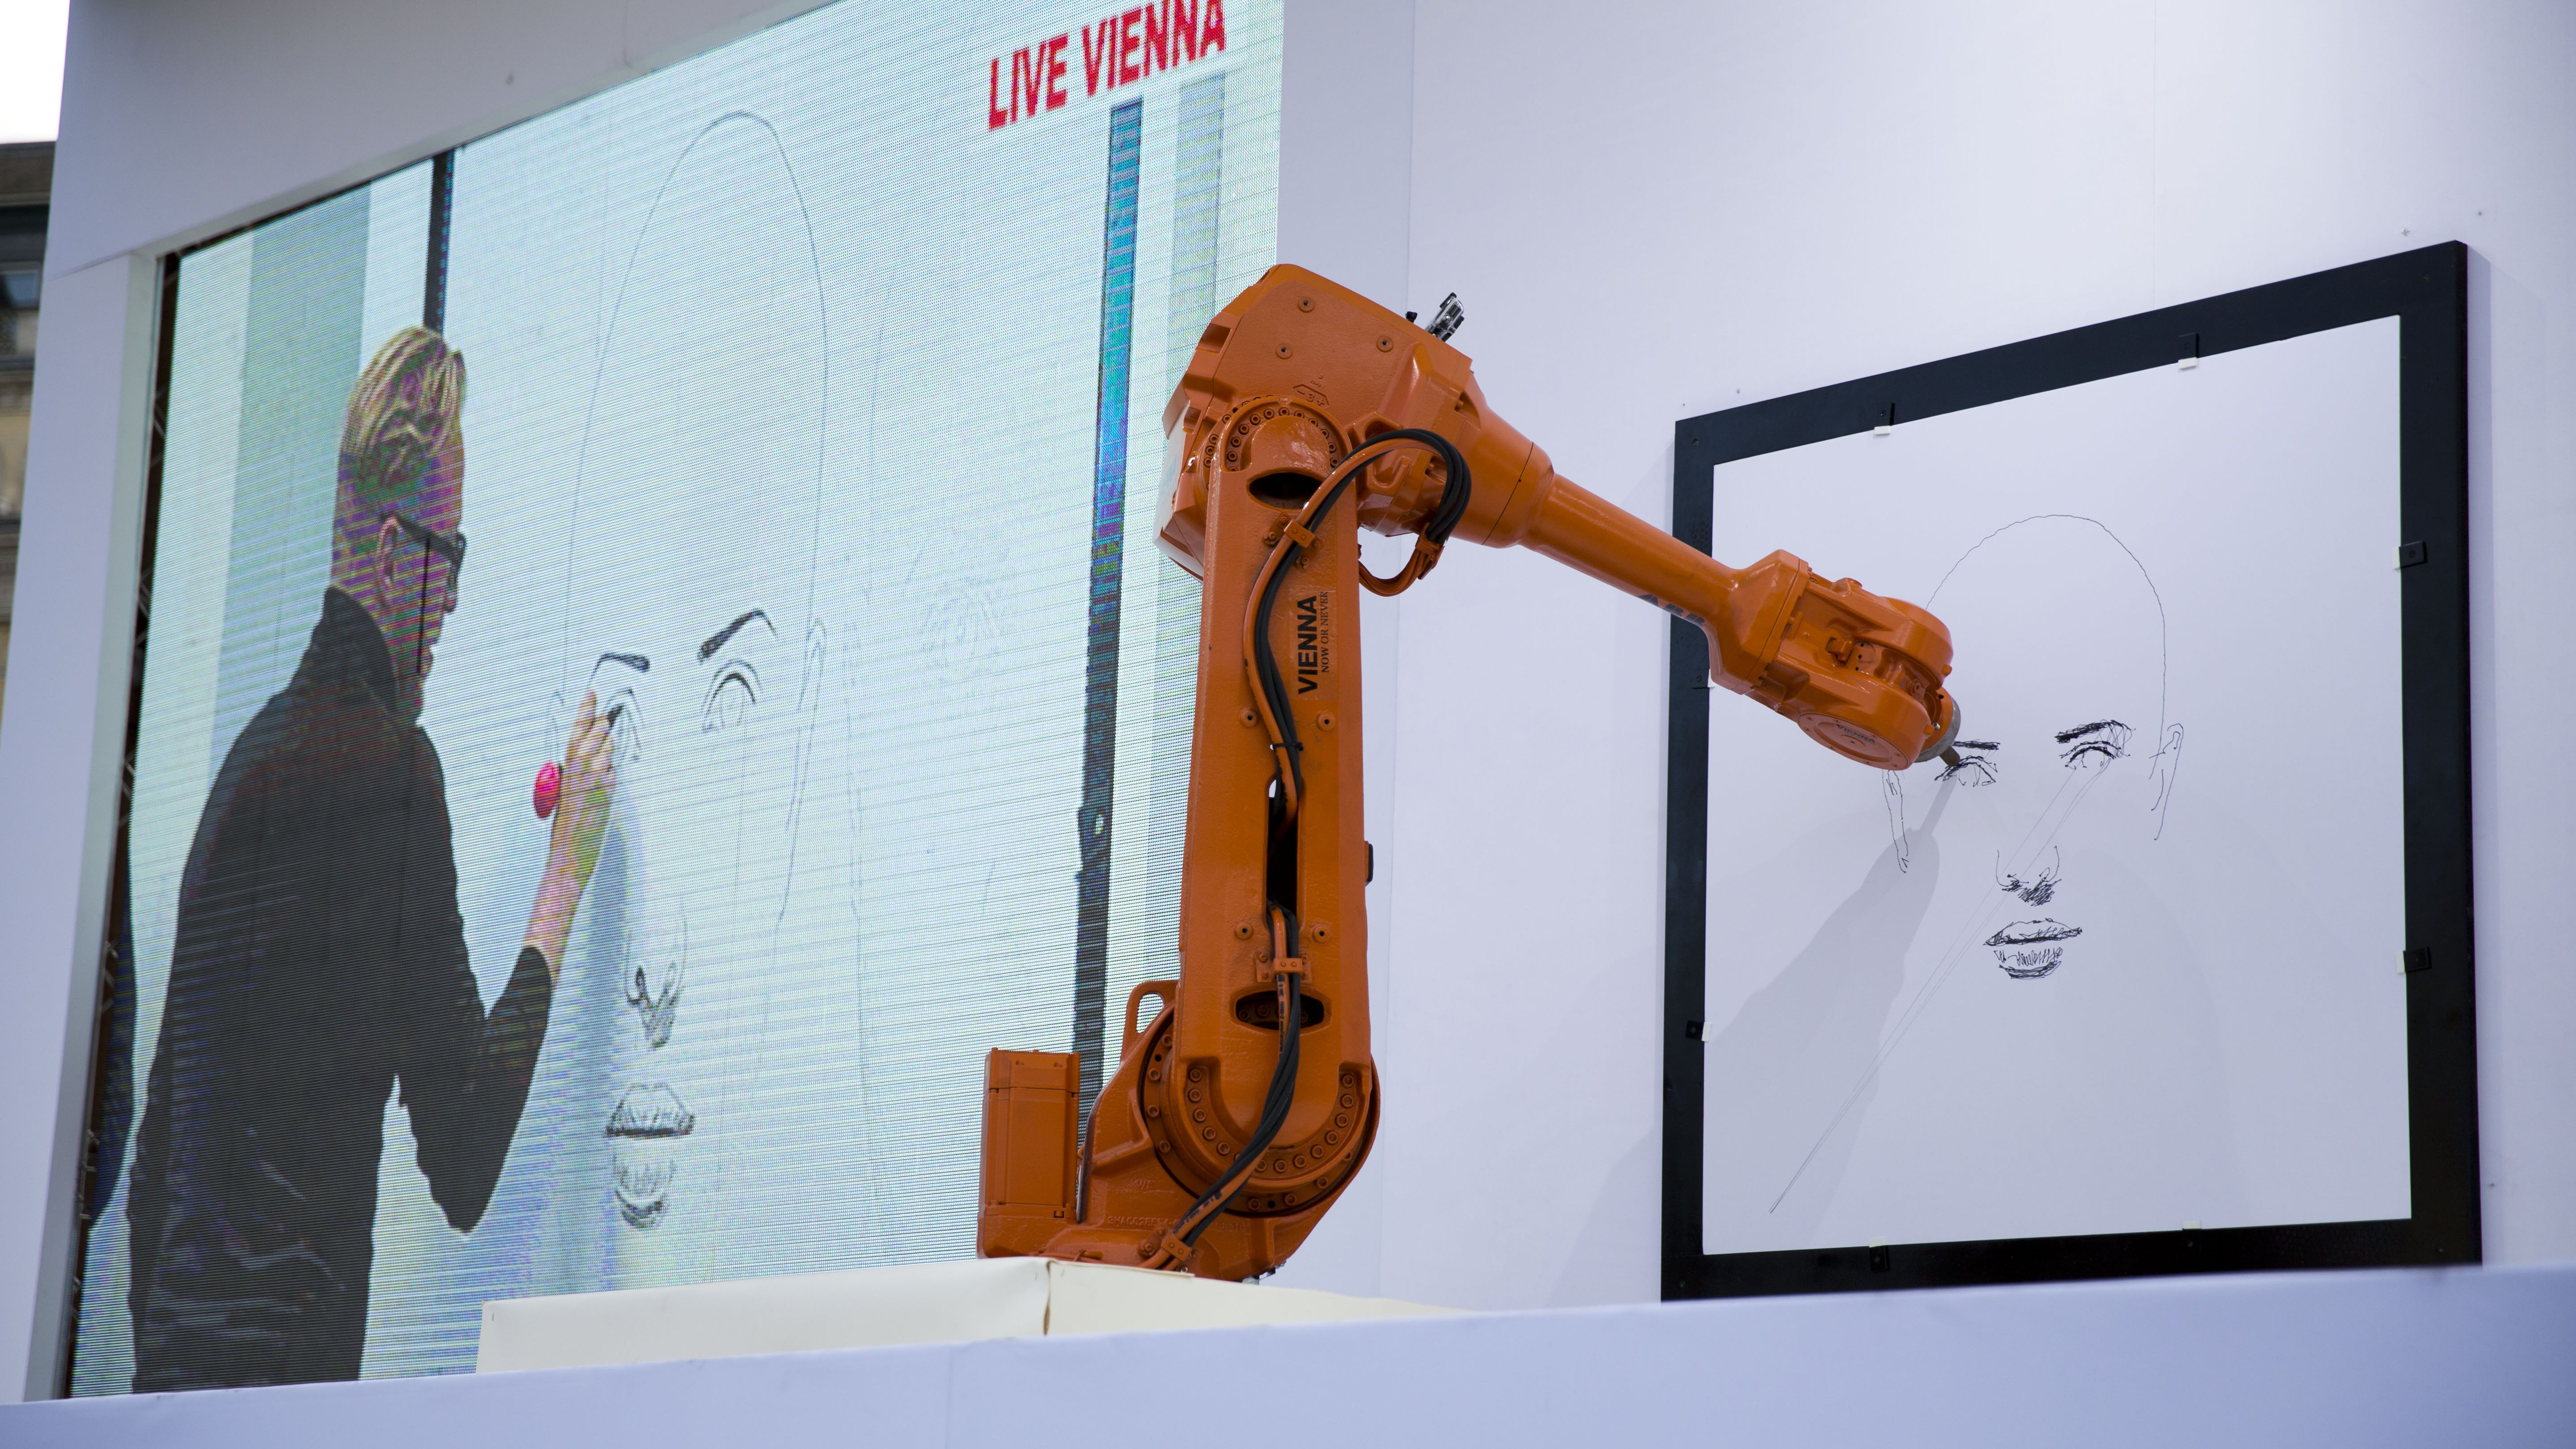 Austrian artist Alex Kiessling is shown working on a drawing live from Vienna on a big screen in Trafalgar Square, London, as robot arms in London, right, and Berlin replicate his work.